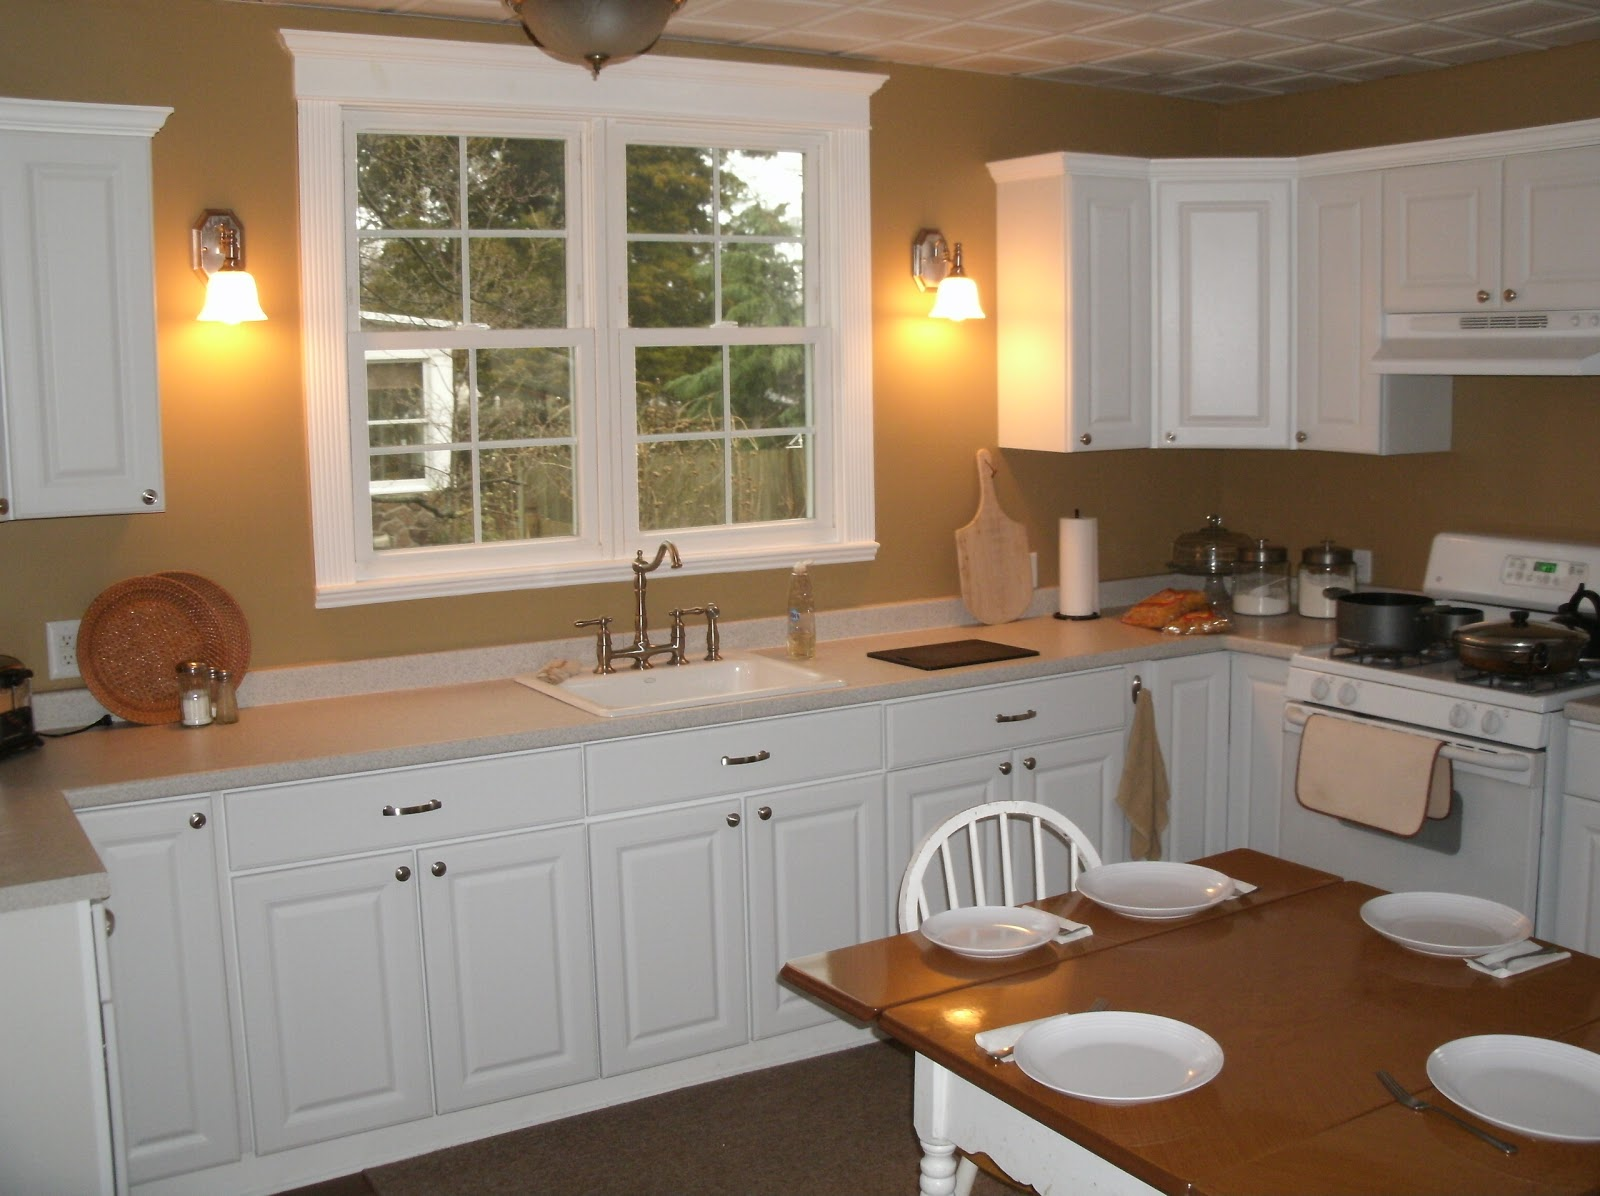 home remodeling and improvements tips and how to's